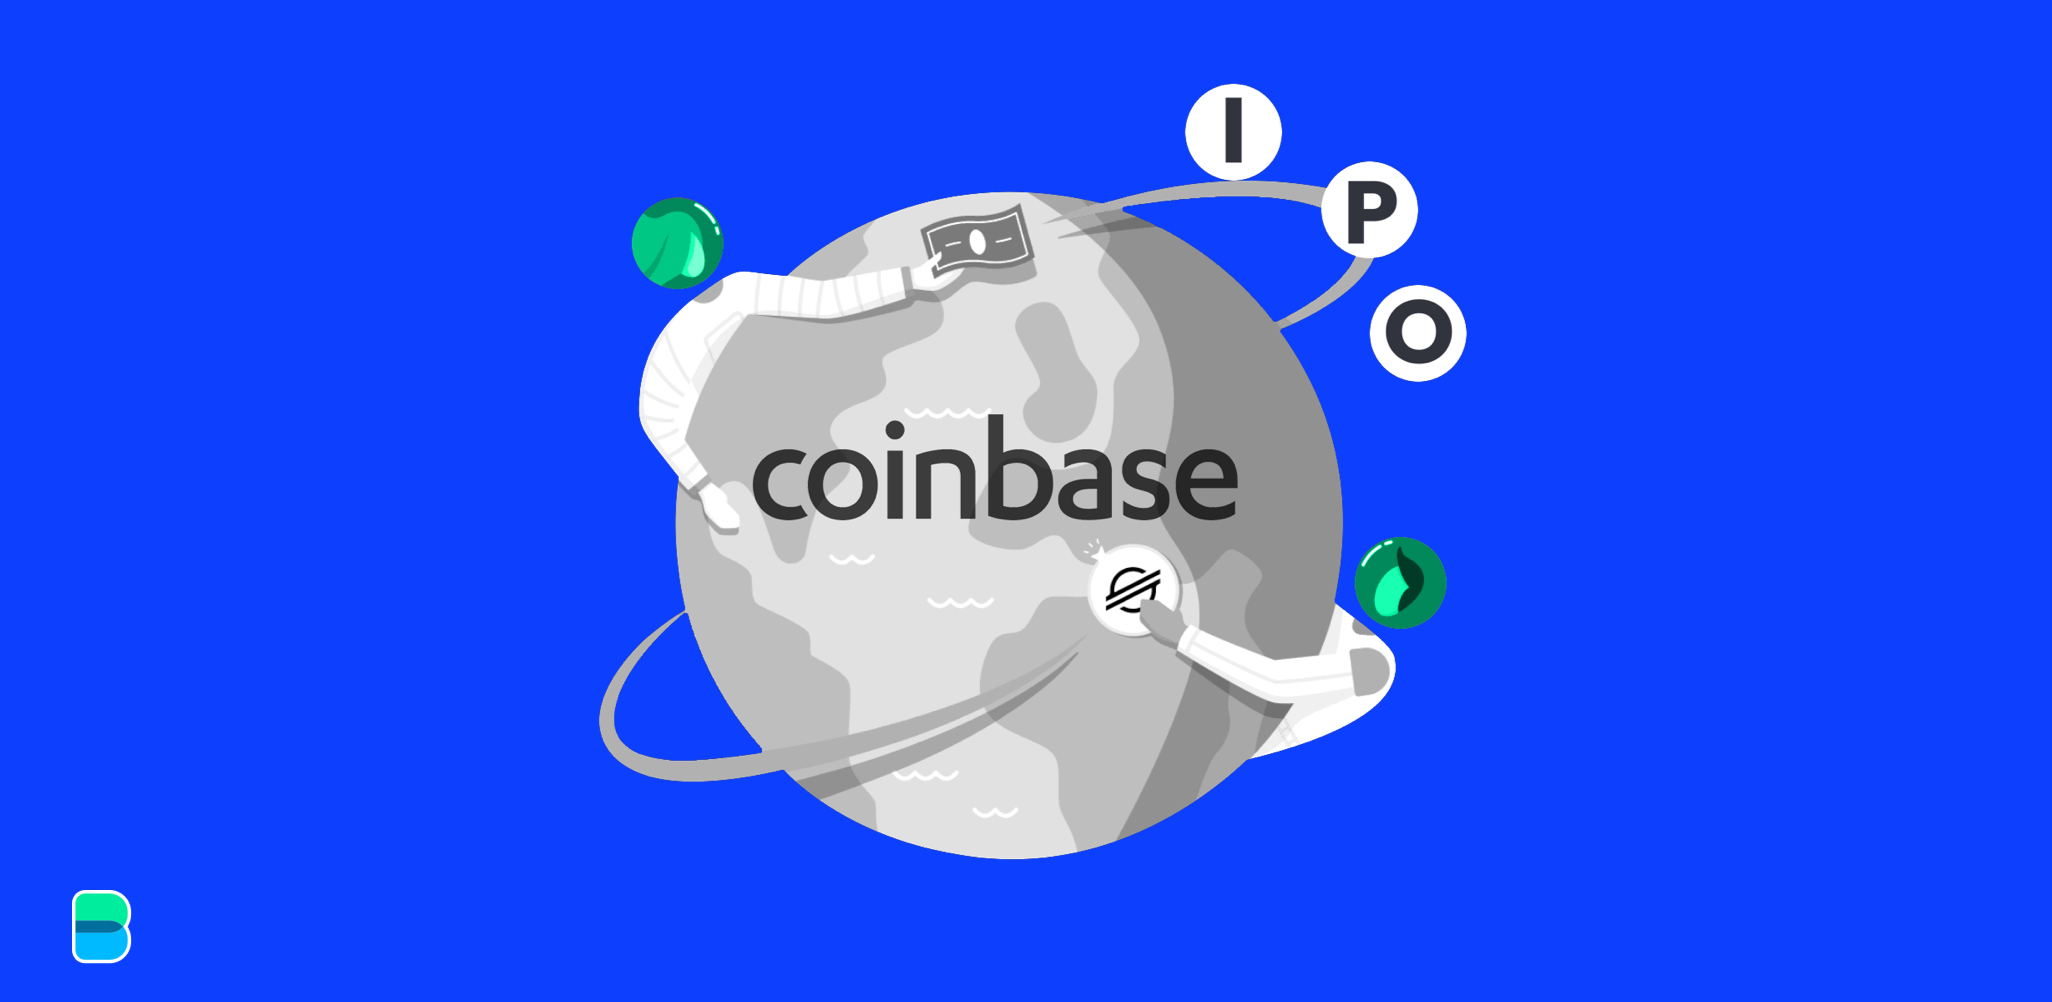 Coinbase raises by going public